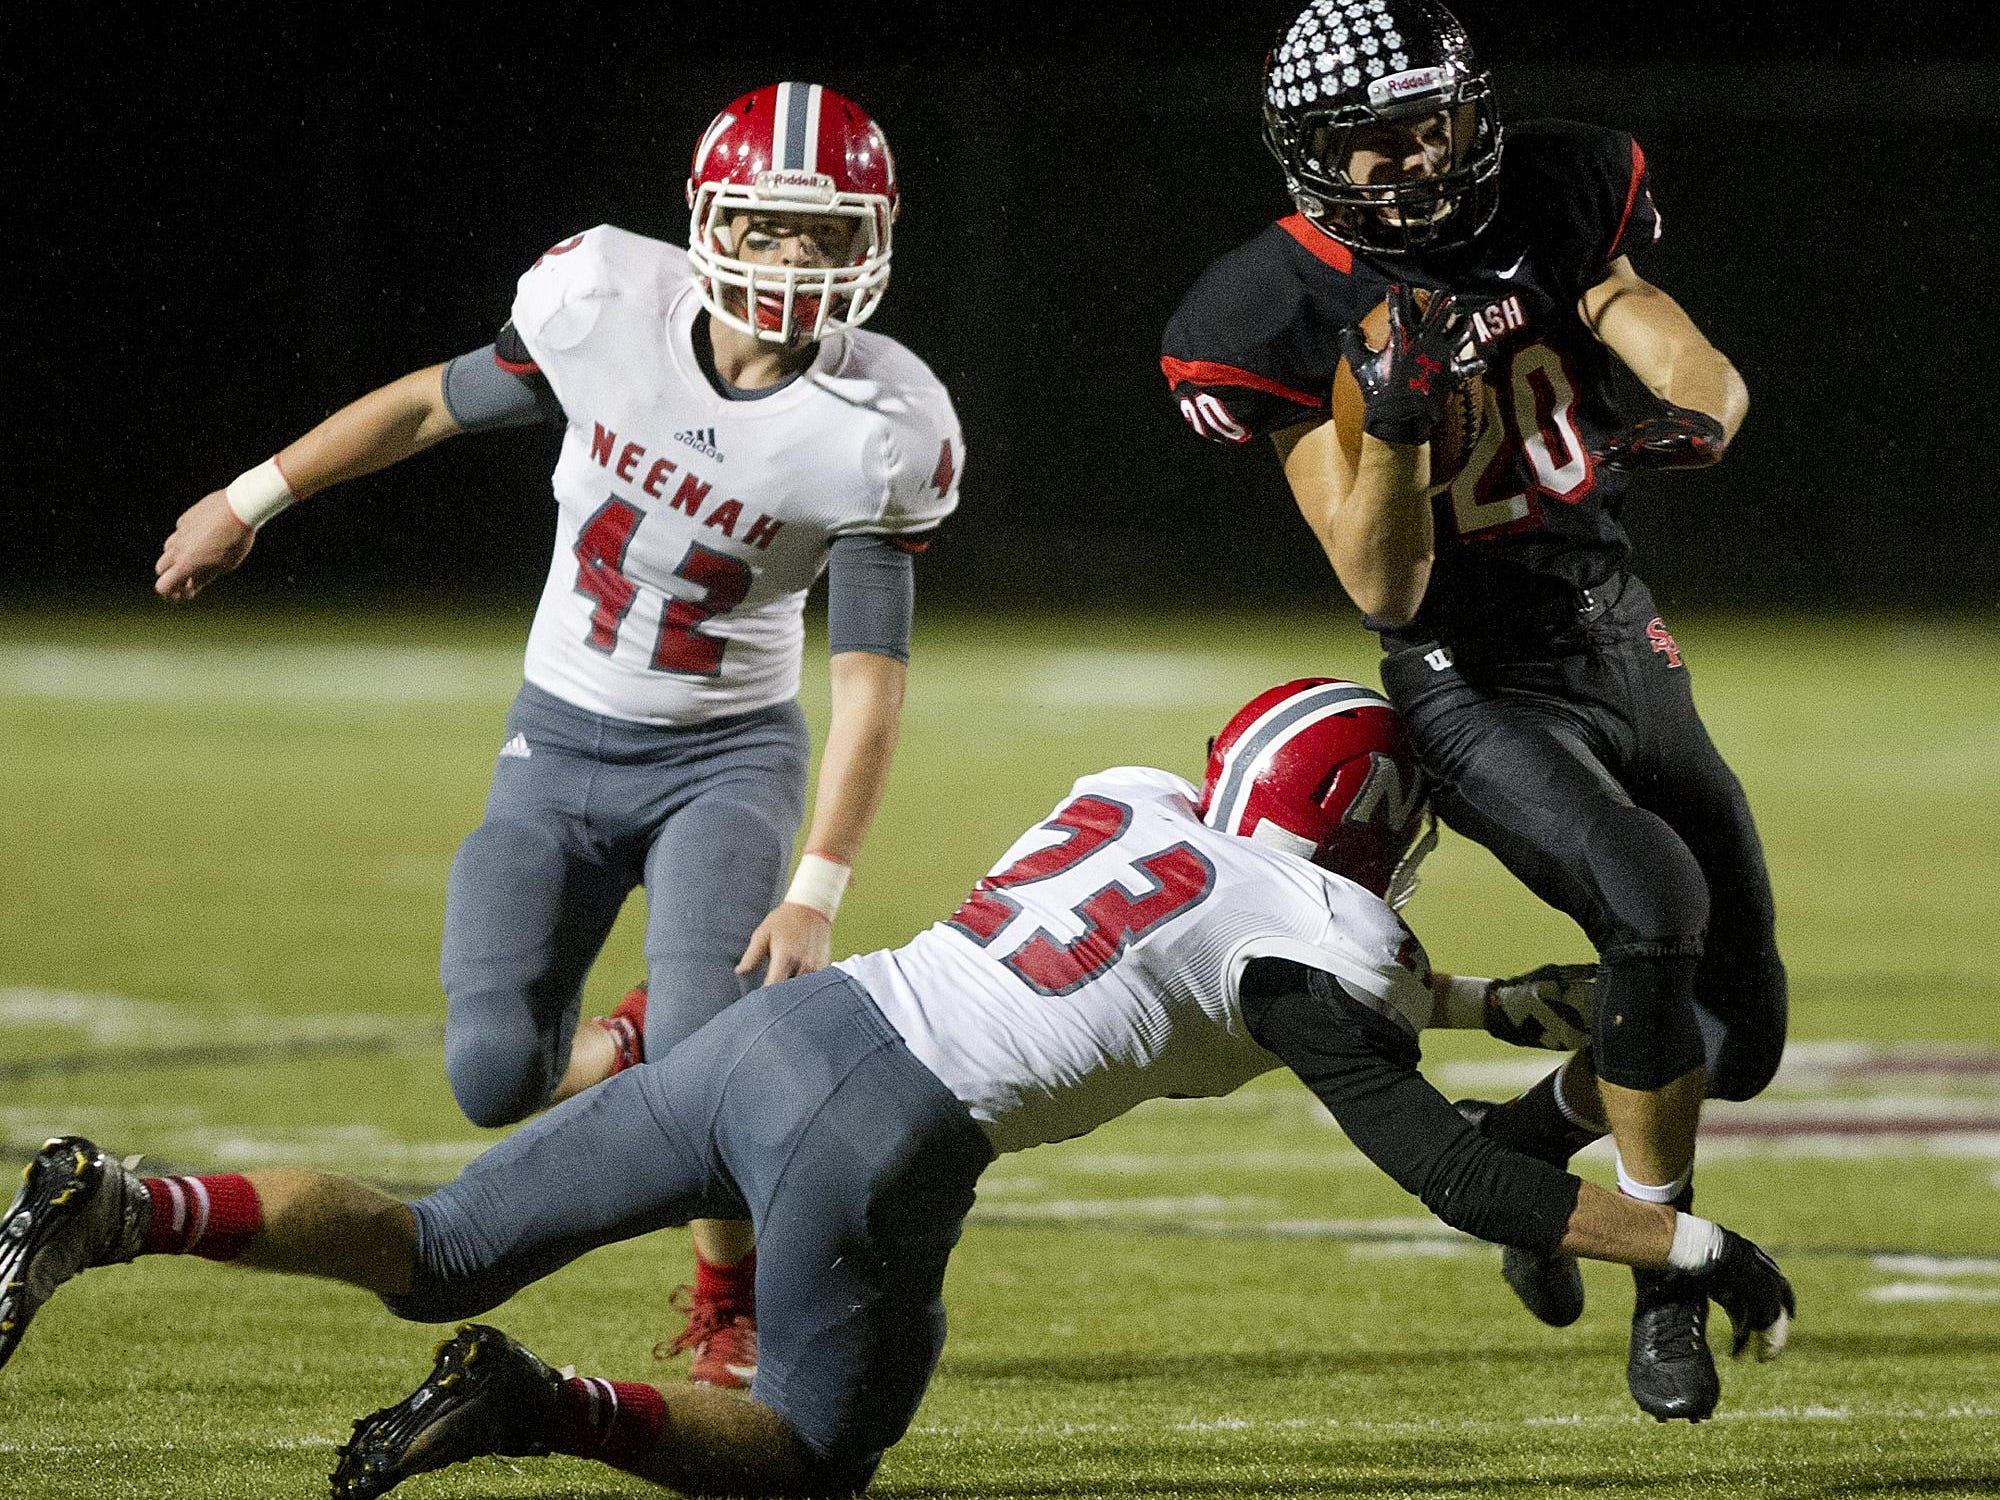 Neenah's Sam Ferron, left, watches as teammate Weston Hertel, center, tries to stop SPASH's Gus Turner Zick during the Valley Football Association football game at Goerke Field in Stevens Point on Friday, Sept. 18, 2015.